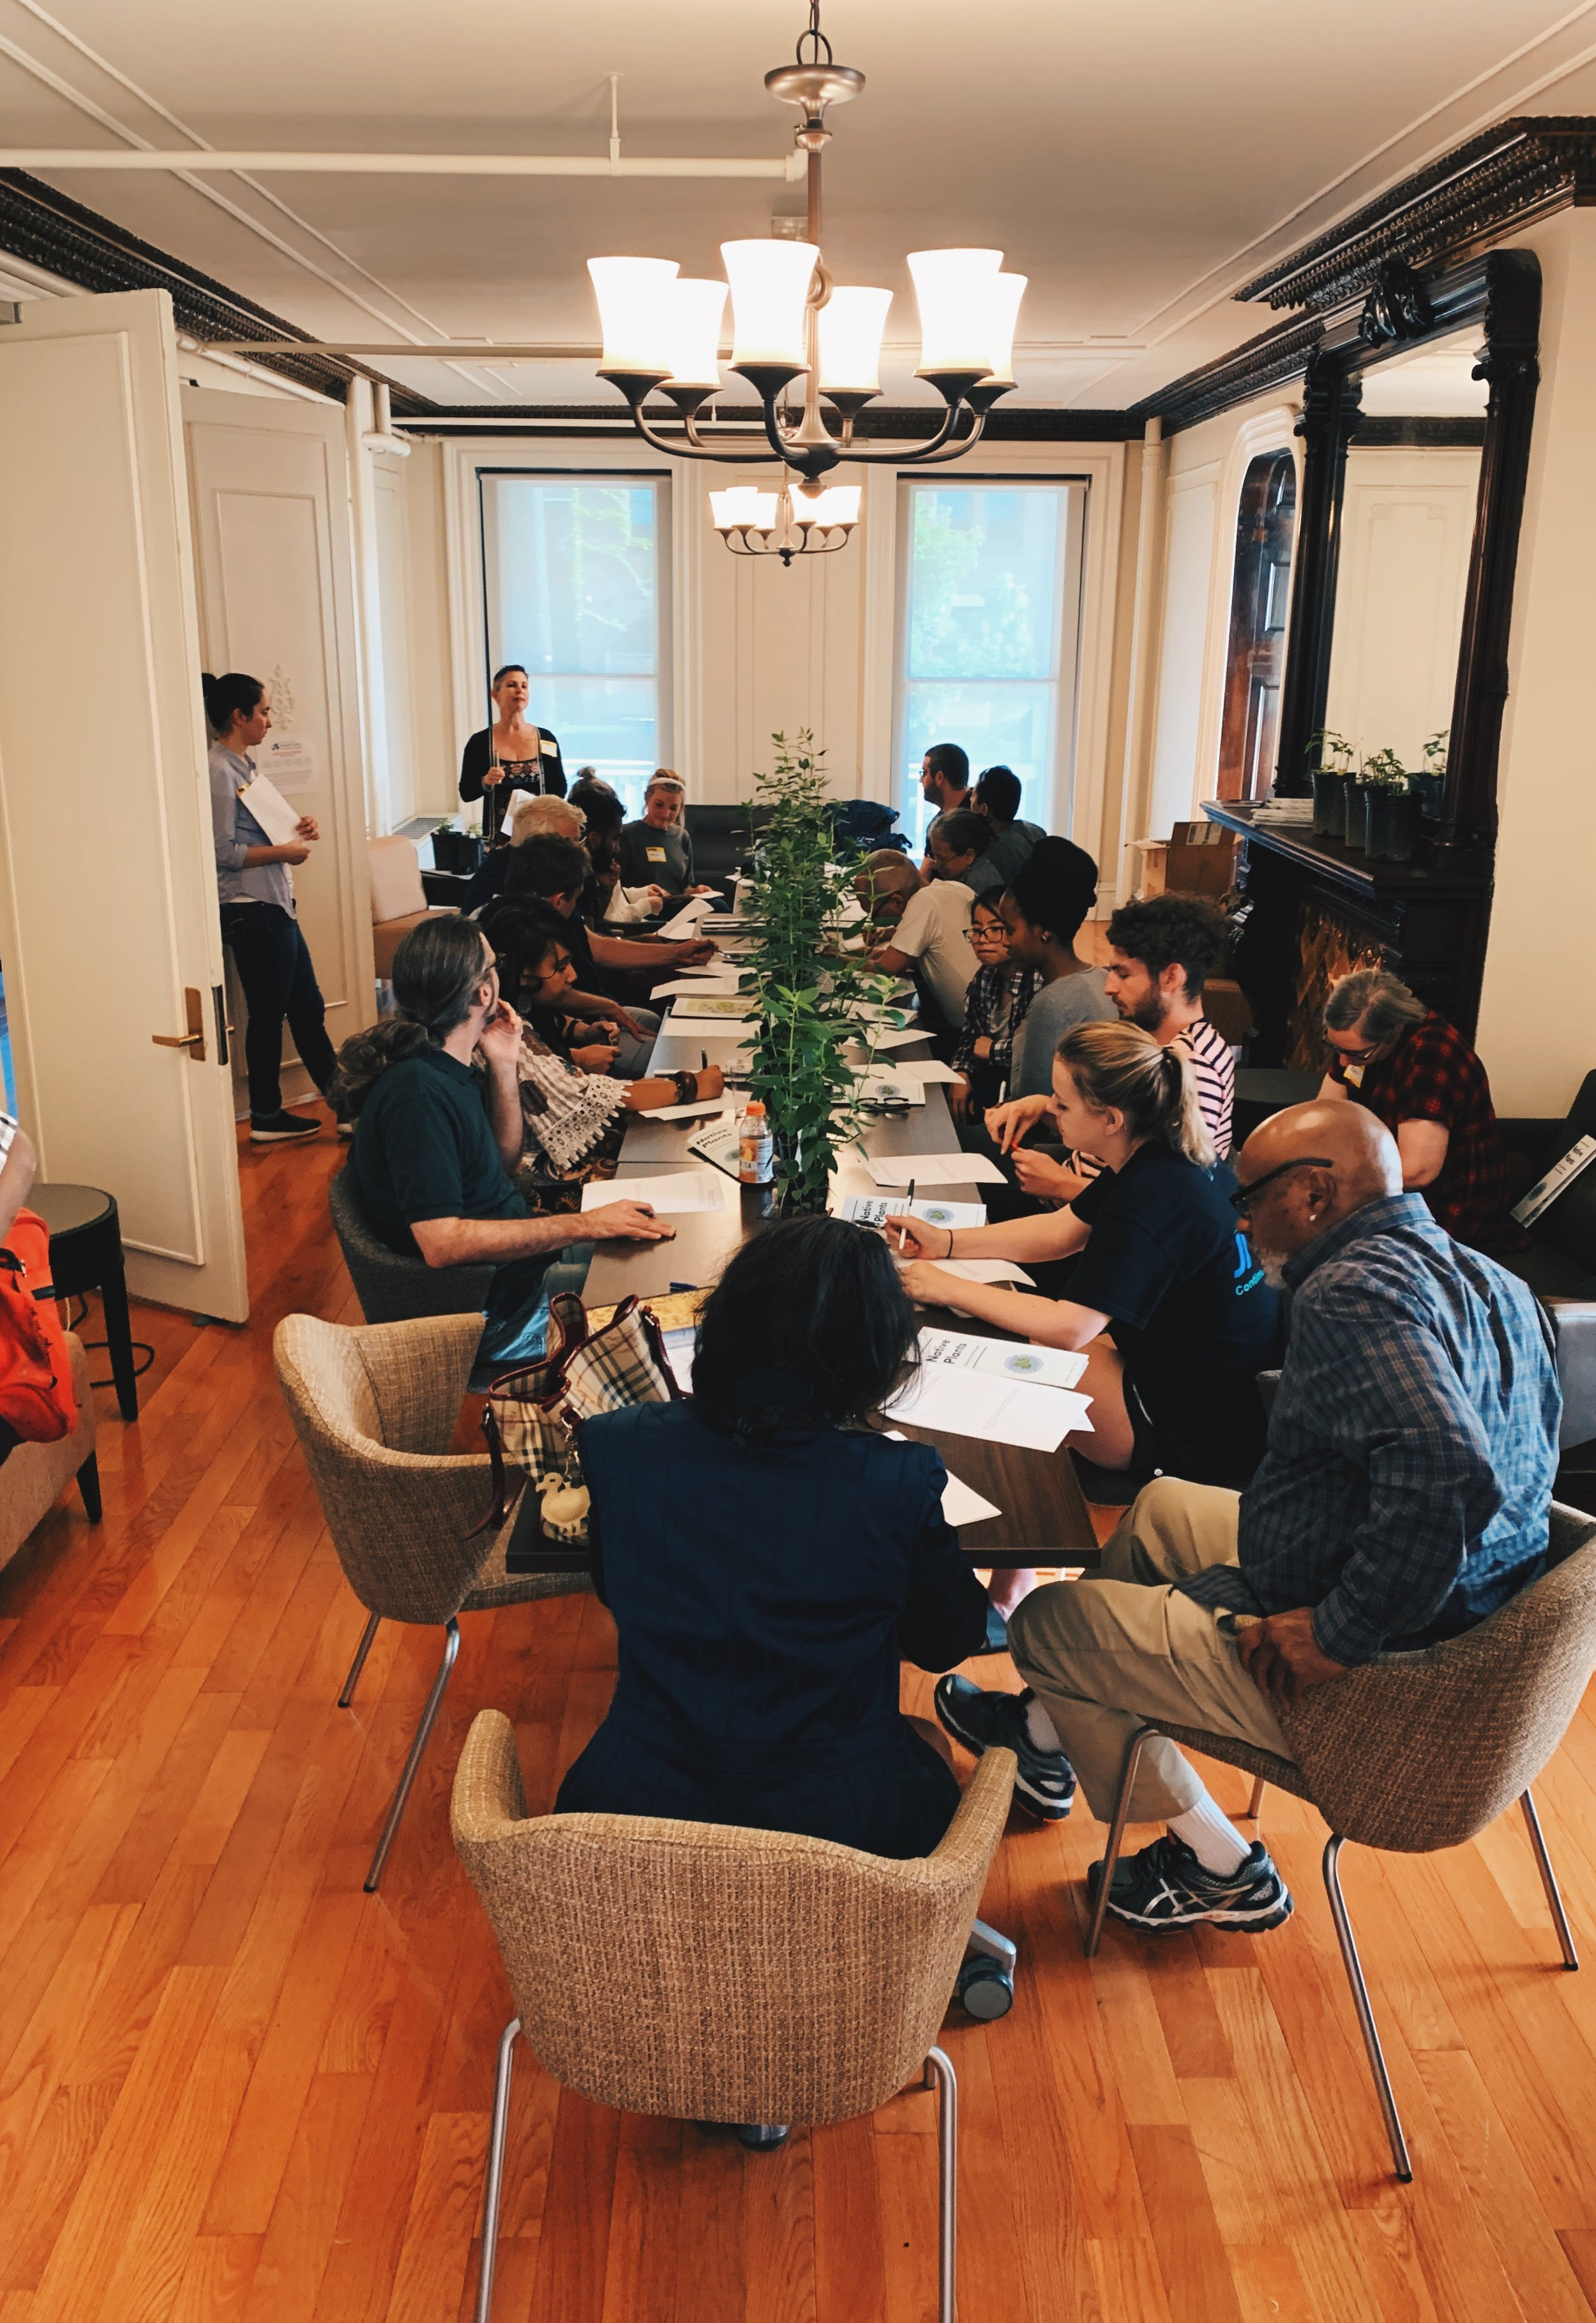 Writers Room First Tuesday Workshop in the Lindy House at the Dornsife Center, May 2019.